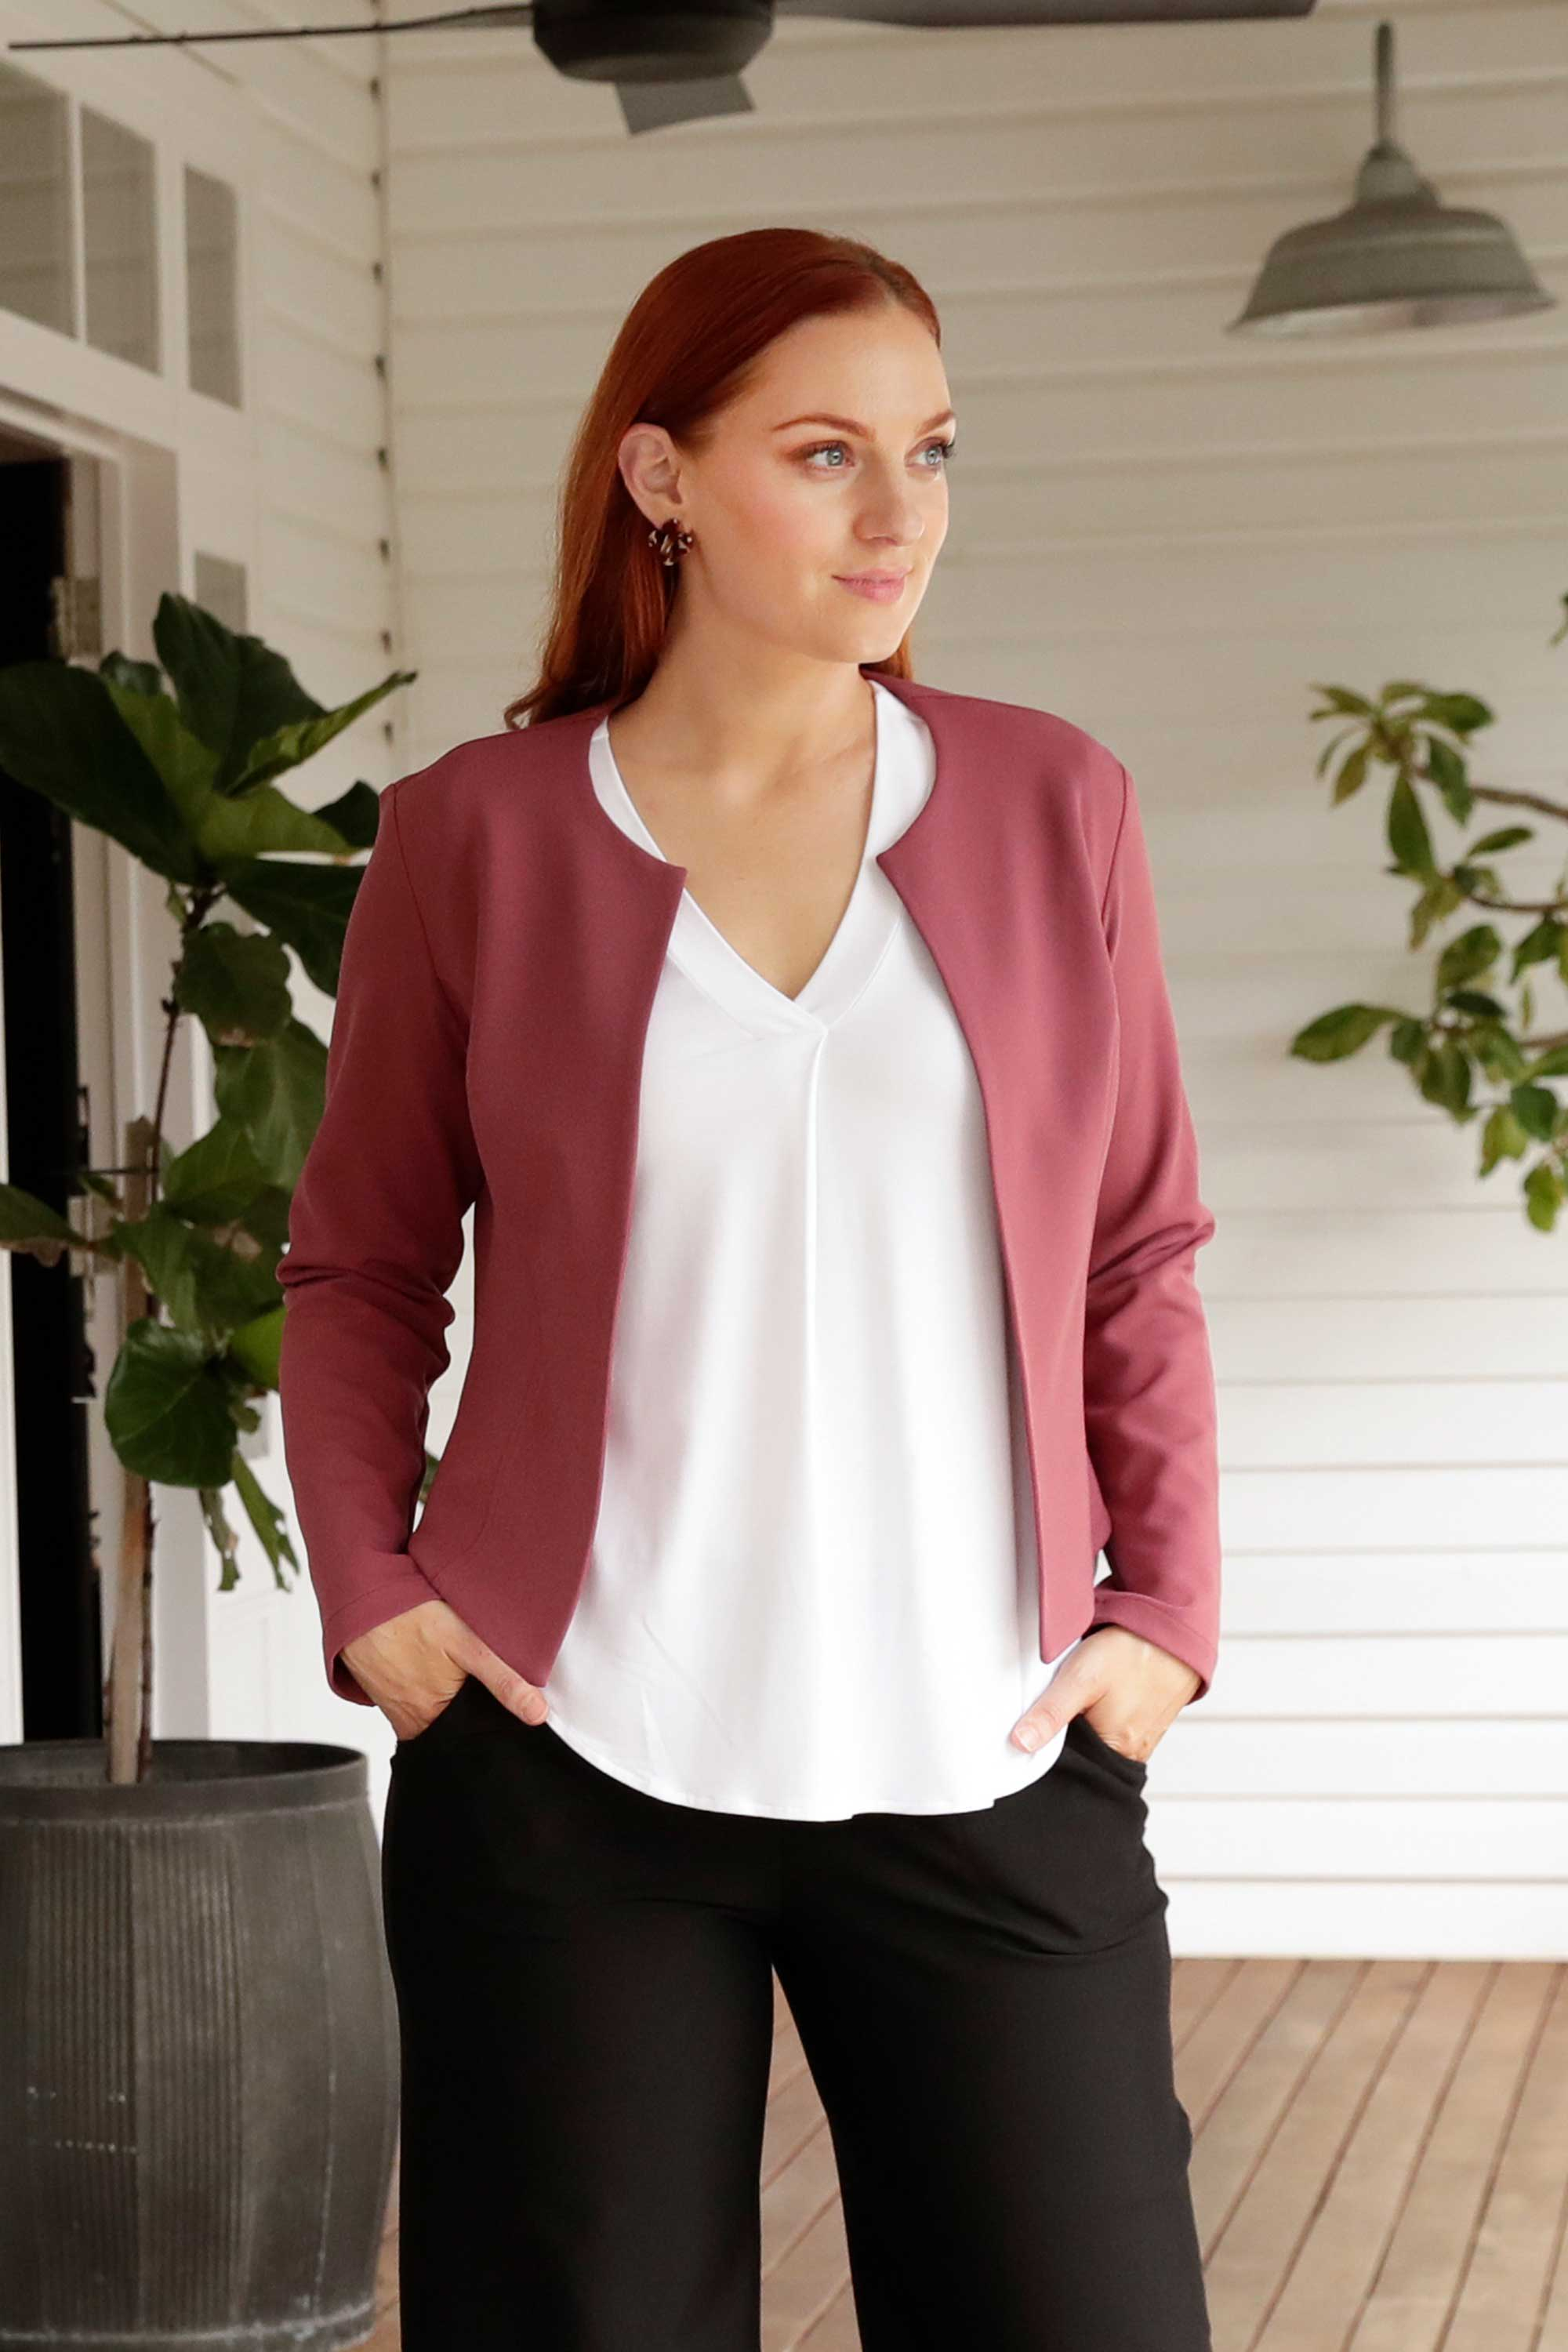 Leina & Fleur Have Designed a Luxe Tailored Cut Jacket in Beautiful Pink Bombay. Leina & Fleur Are Proudly Australian Made and Carry Sizes 8 to 24.